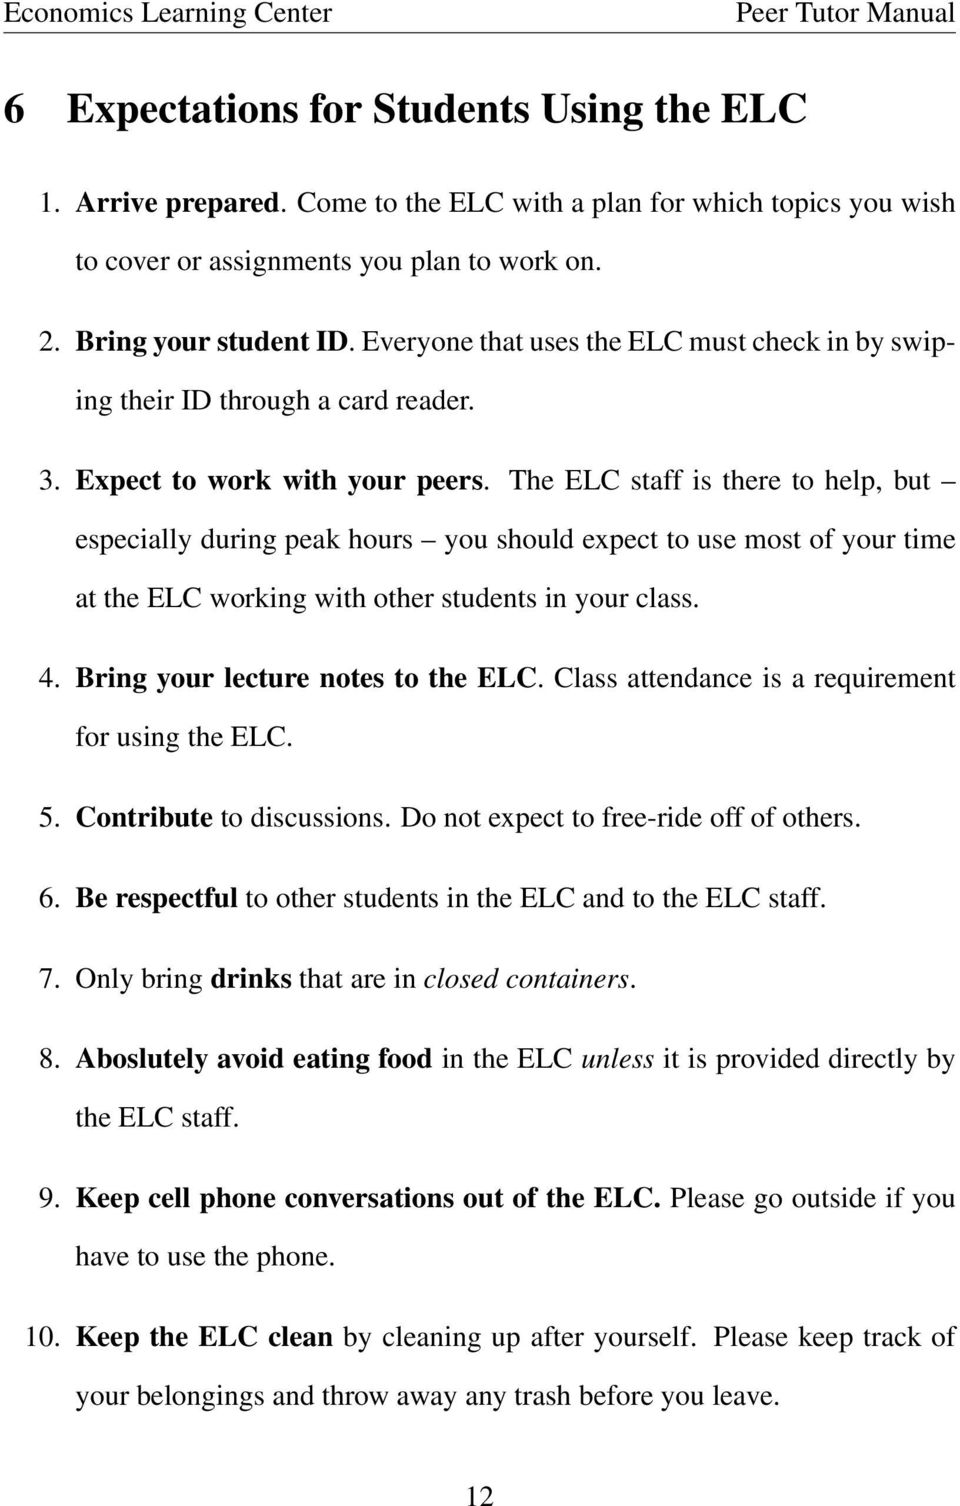 The ELC staff is there to help, but especially during peak hours you should expect to use most of your time at the ELC working with other students in your class. 4.